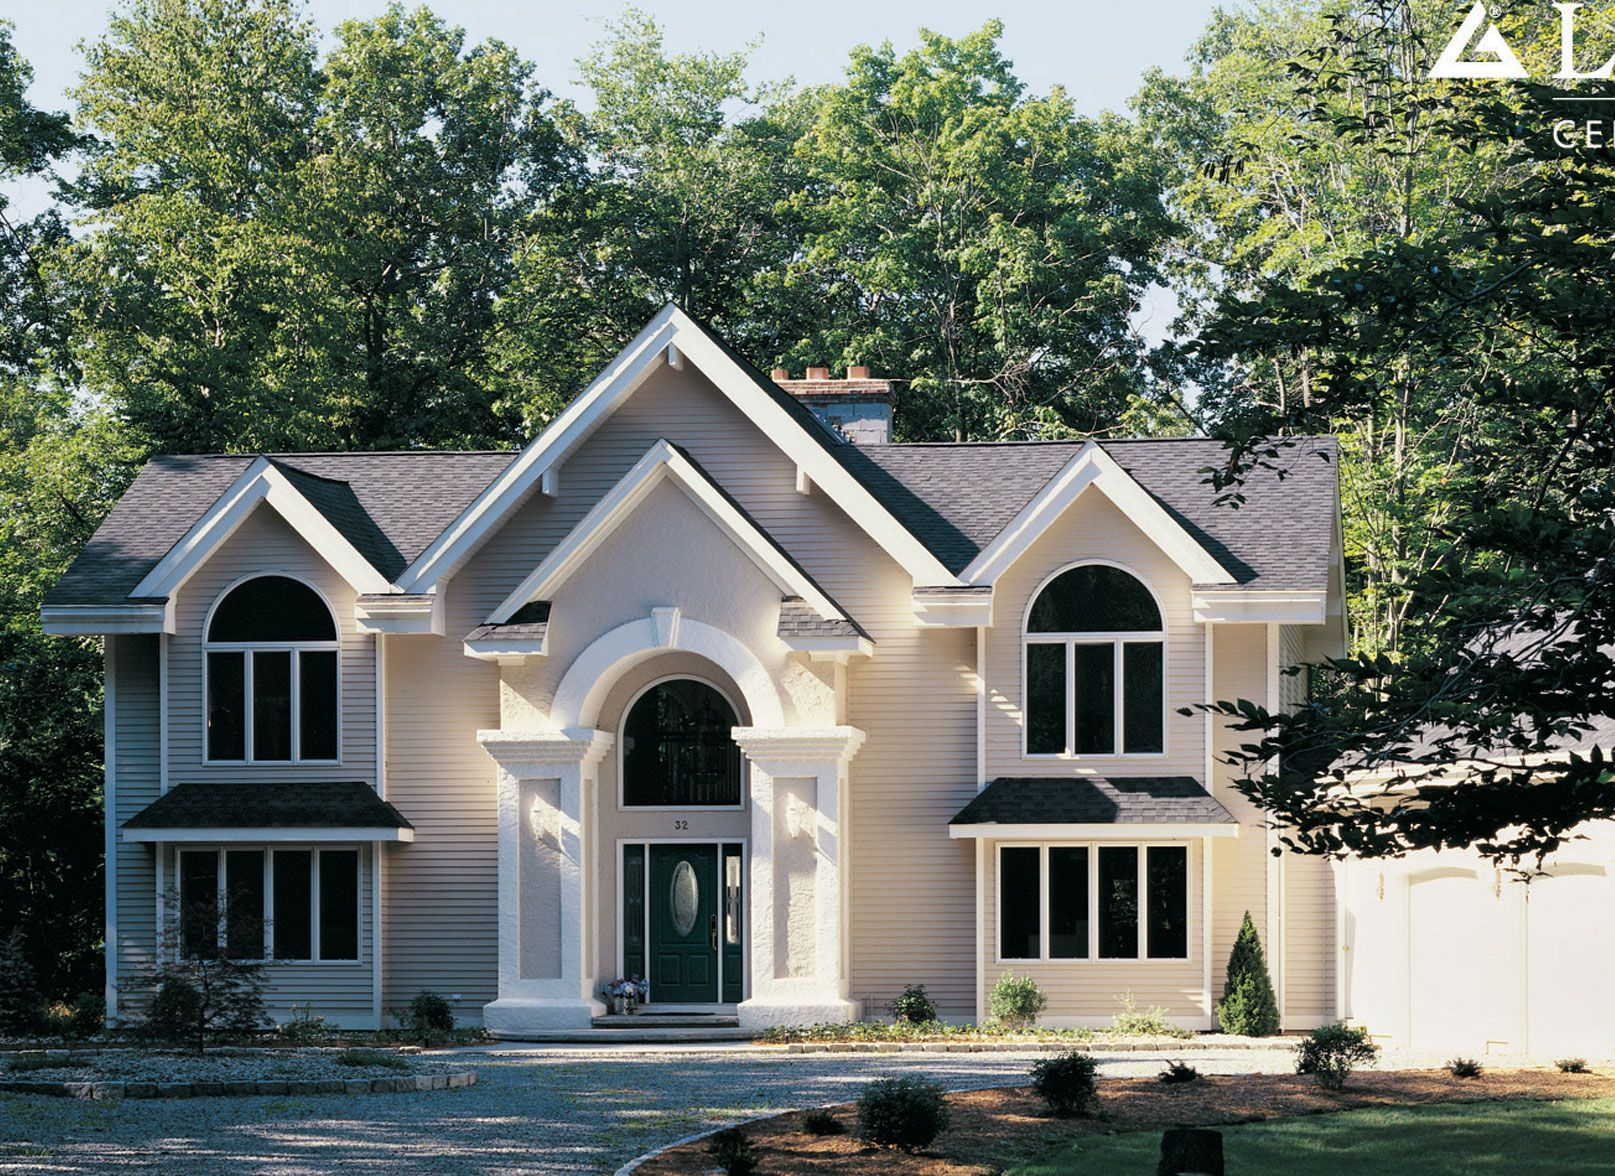 House Builders Ottawa A Stunning Lindal Design From Sierra Gate Homes In Ottawa On